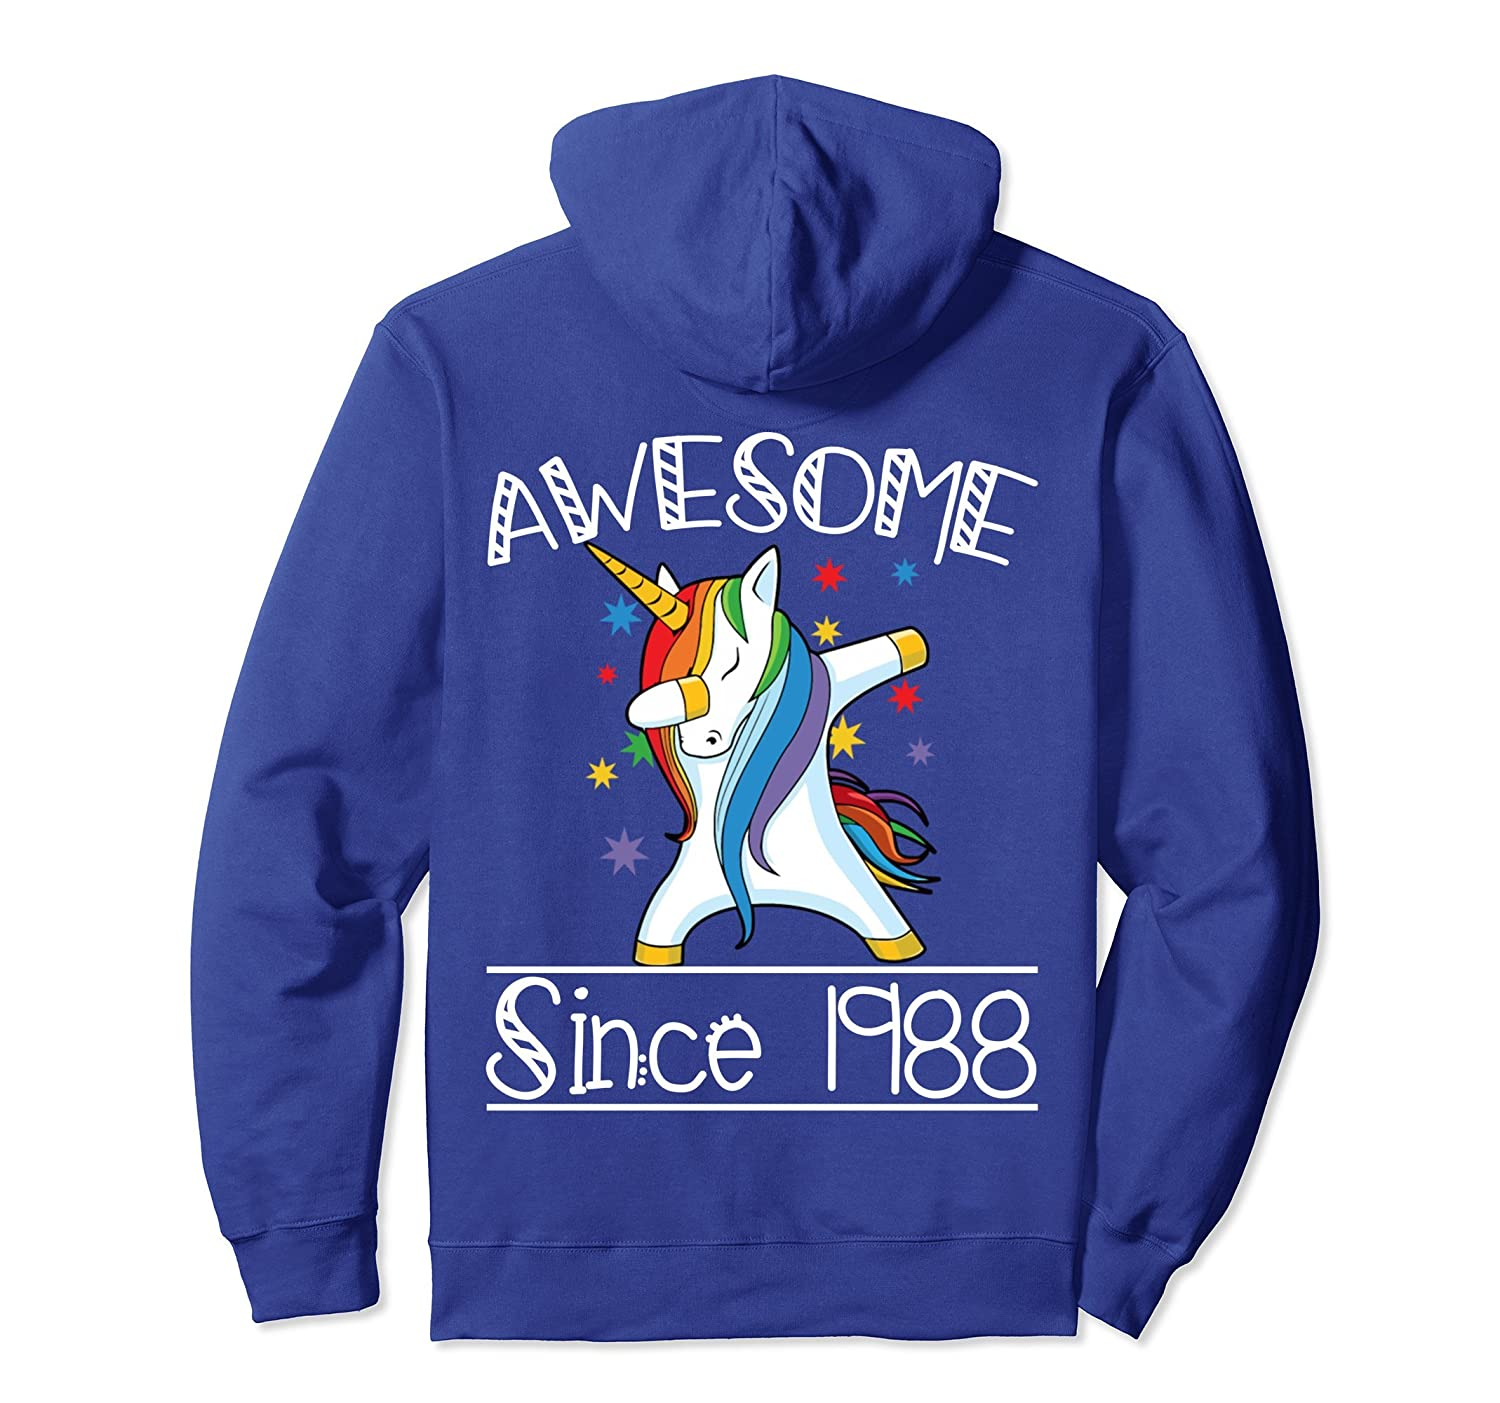 30th Birthday Gifts Vintage 88 Awesome Since 1988 Hoodie-mt